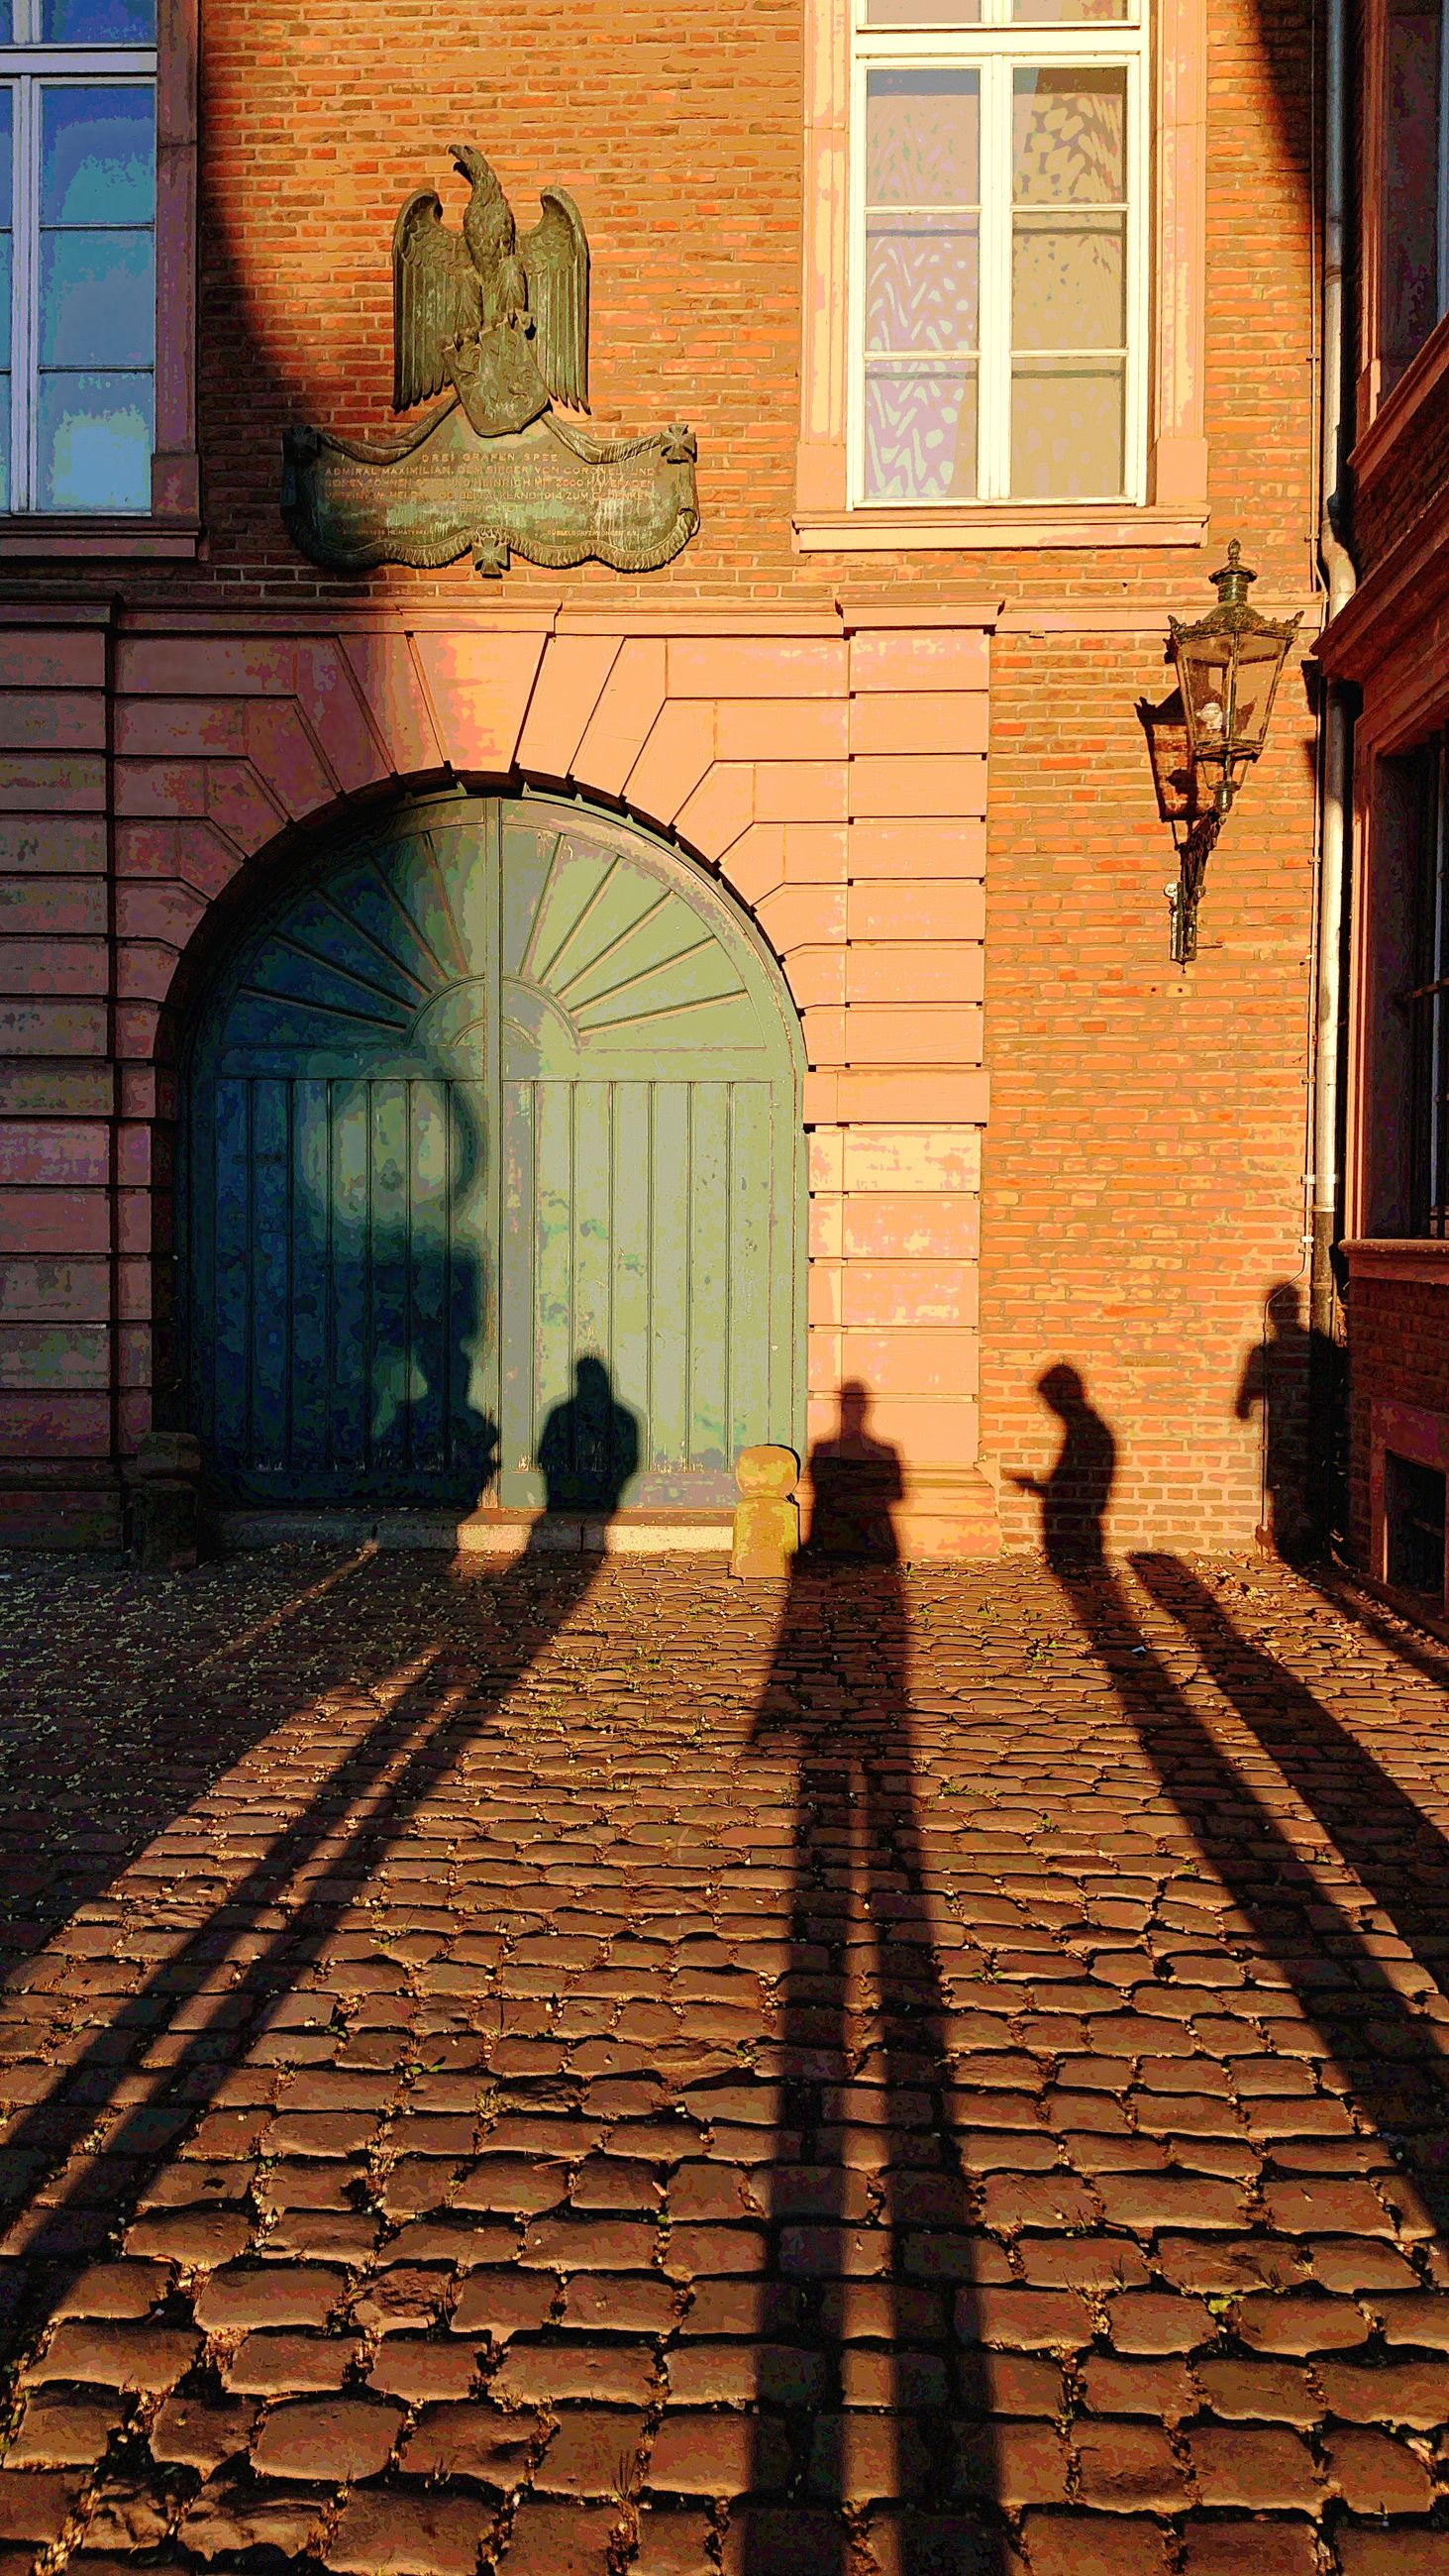 architecture, built structure, building exterior, shadow, real people, building, window, wall, people, men, cobblestone, sunlight, walking, day, group of people, street, adult, lifestyles, nature, outdoors, focus on shadow, brick